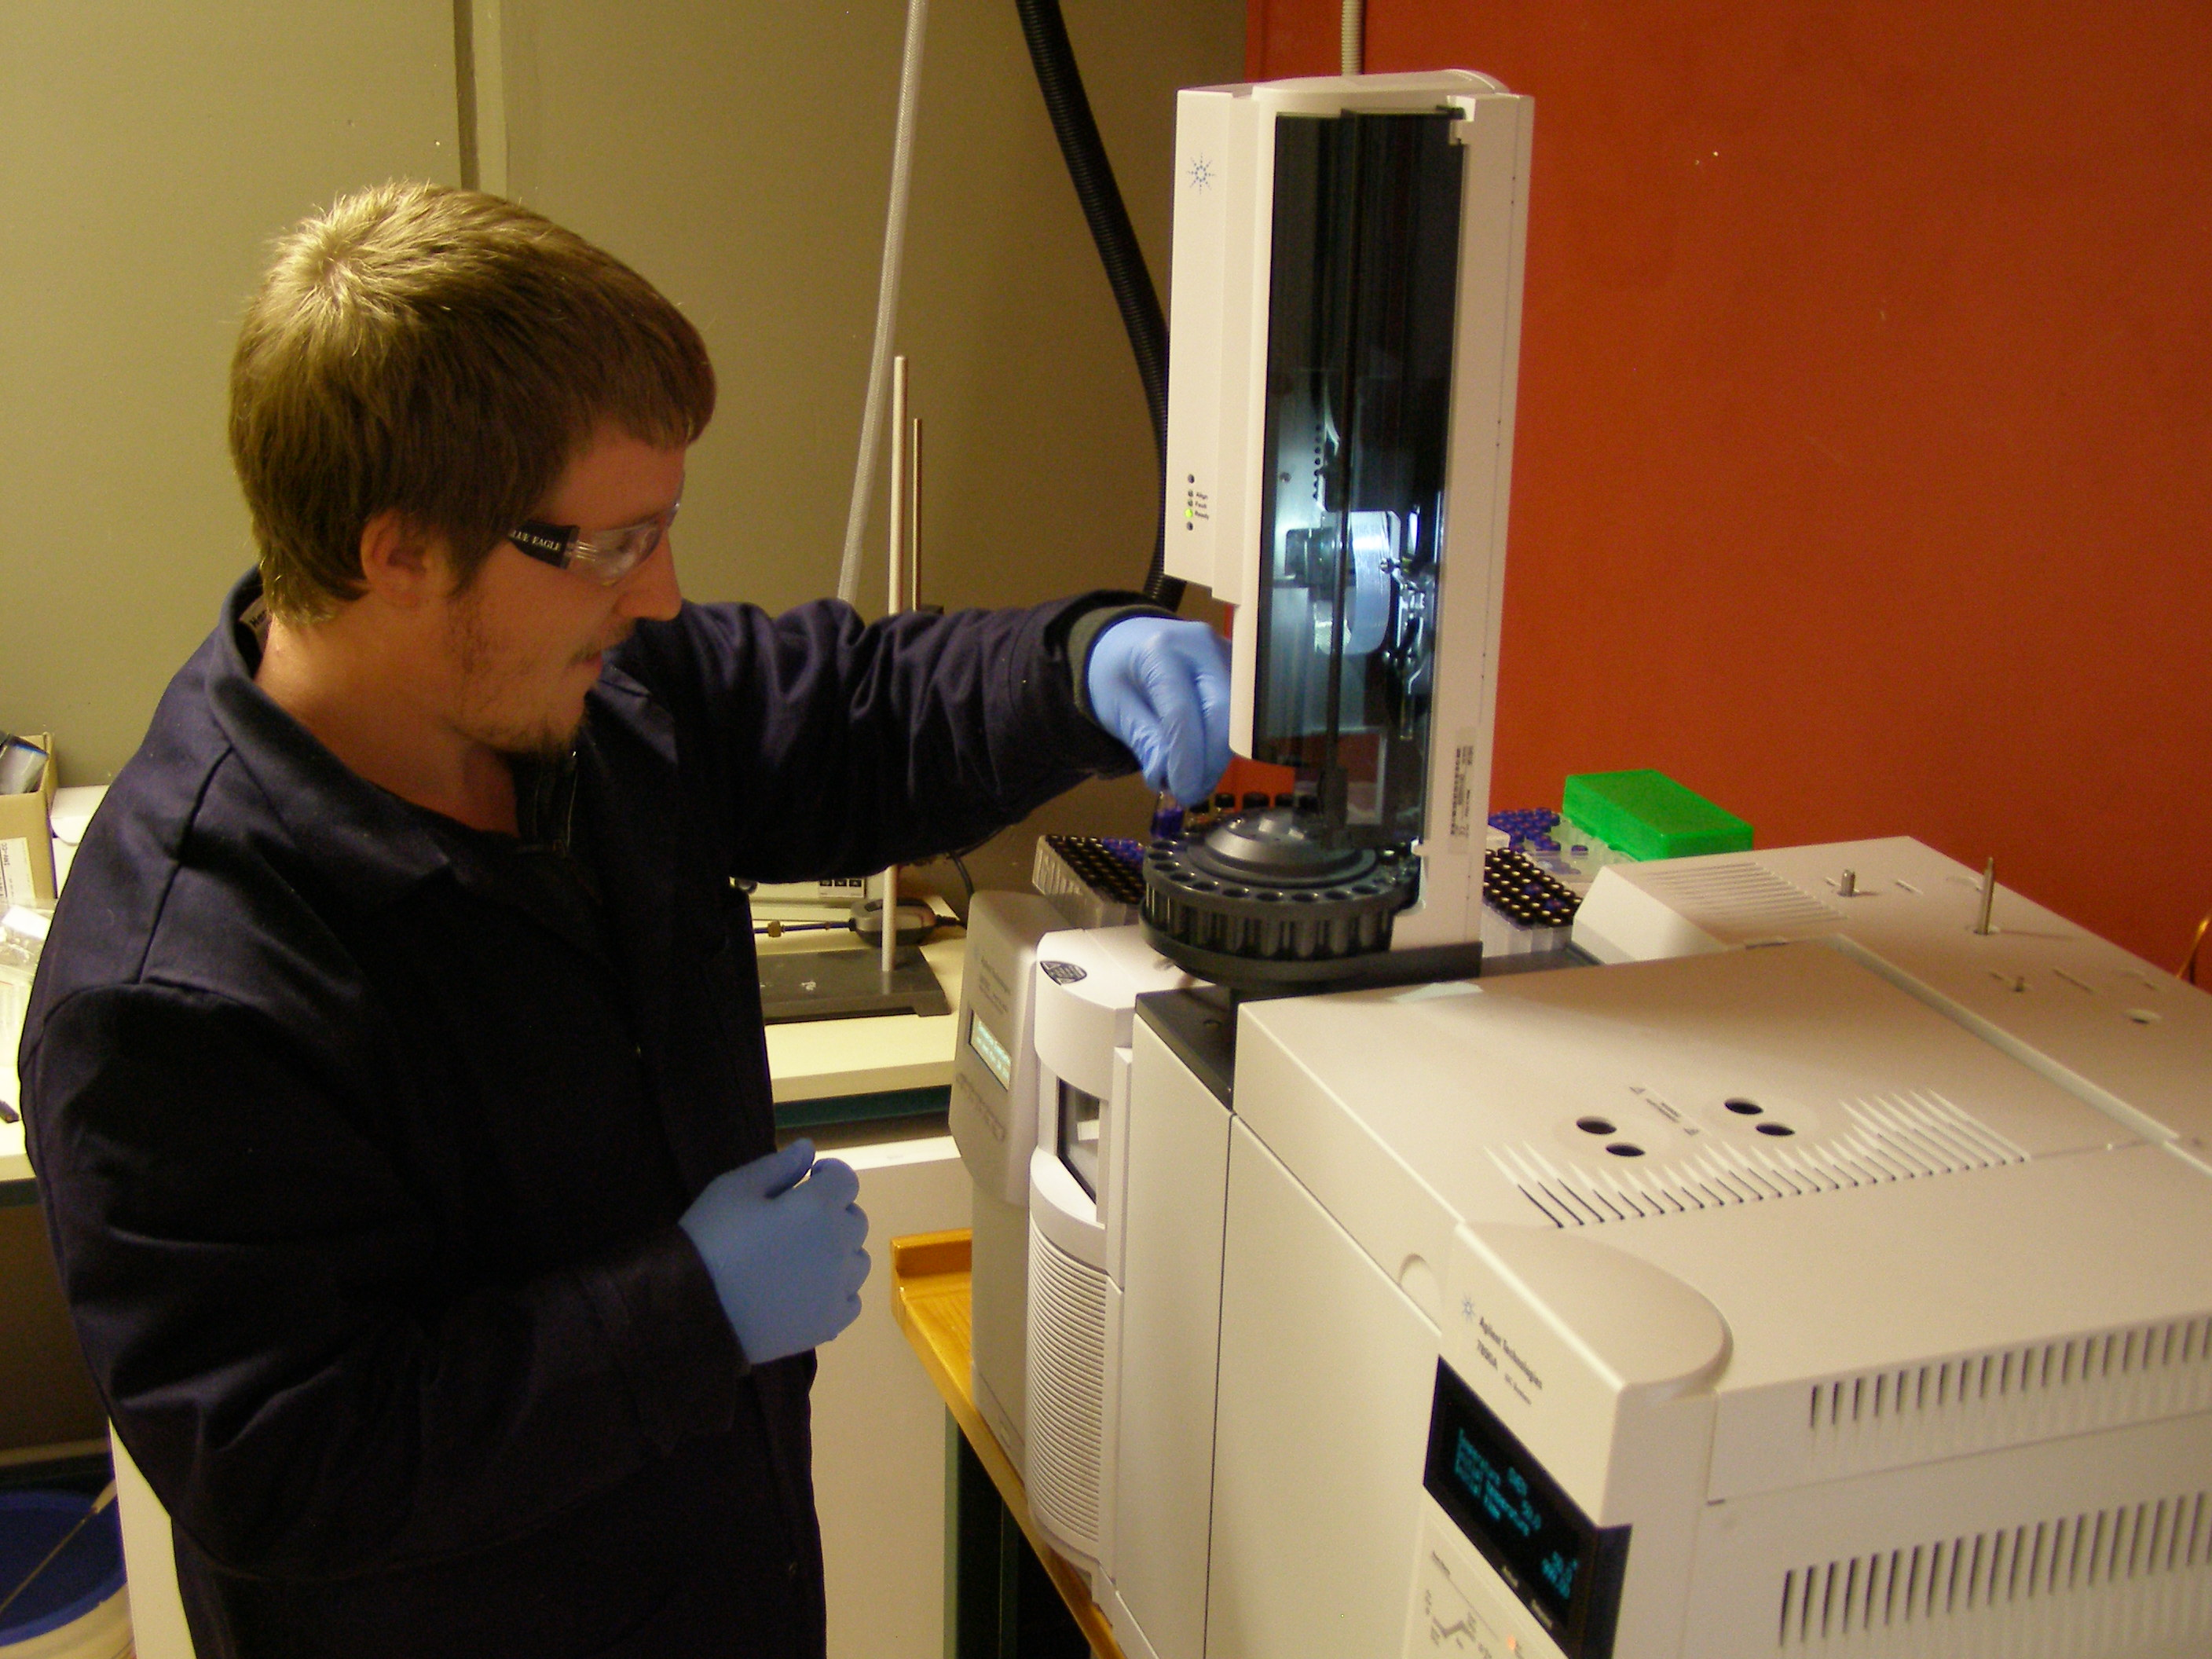 Laboratory-Manager-Michael-operating-the-GC-MS.jpg